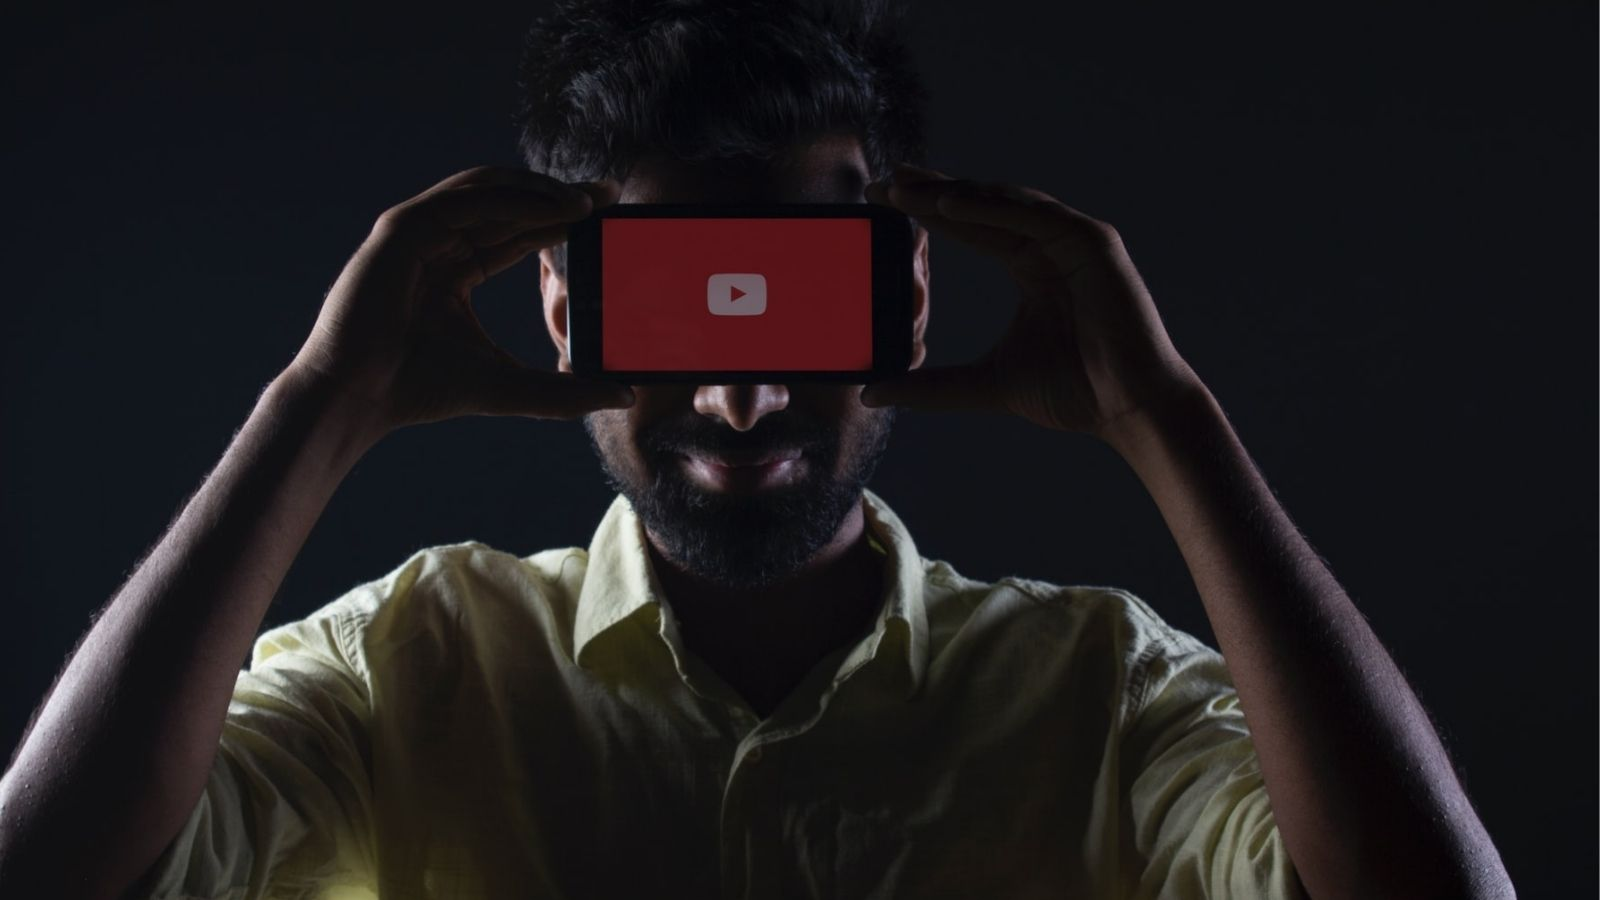 Person Holding YouTube App